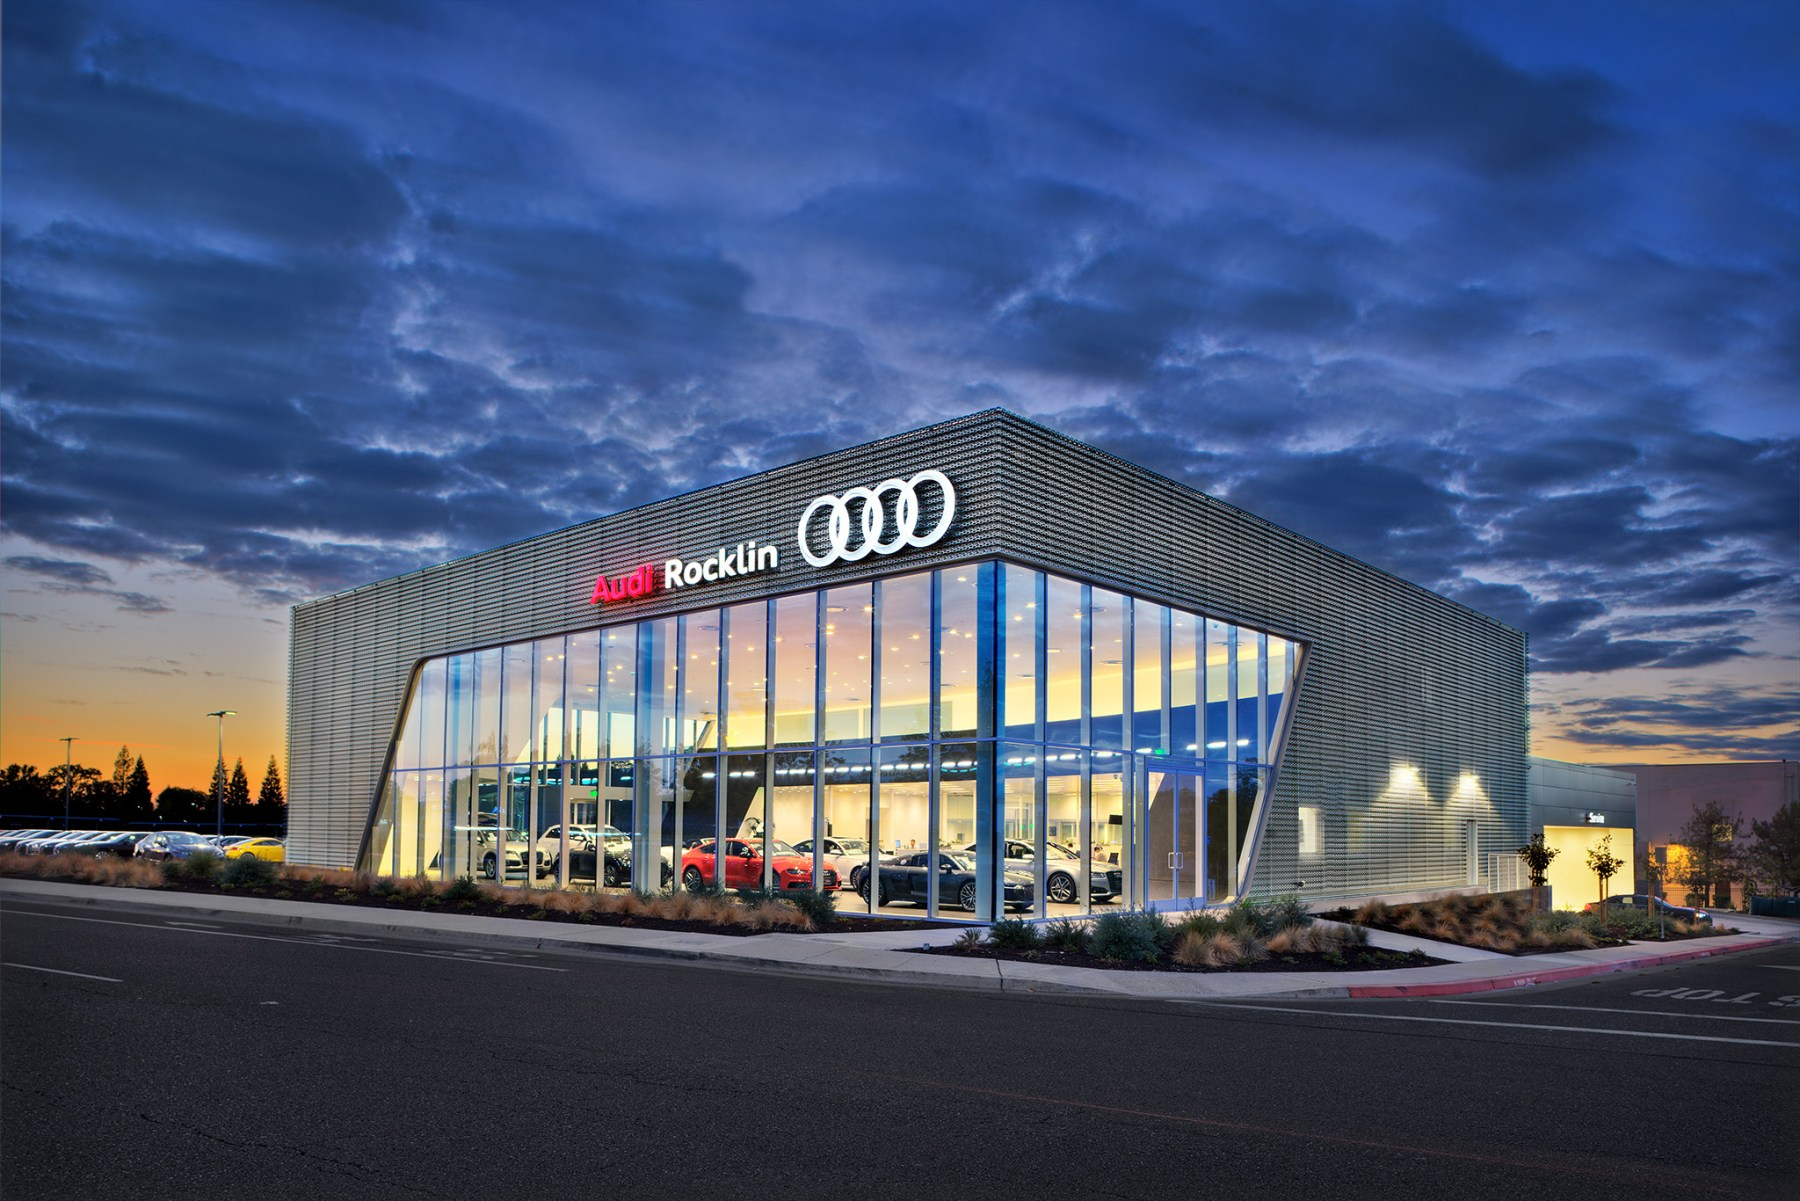 Photo of Audi Rocklin at Dusk